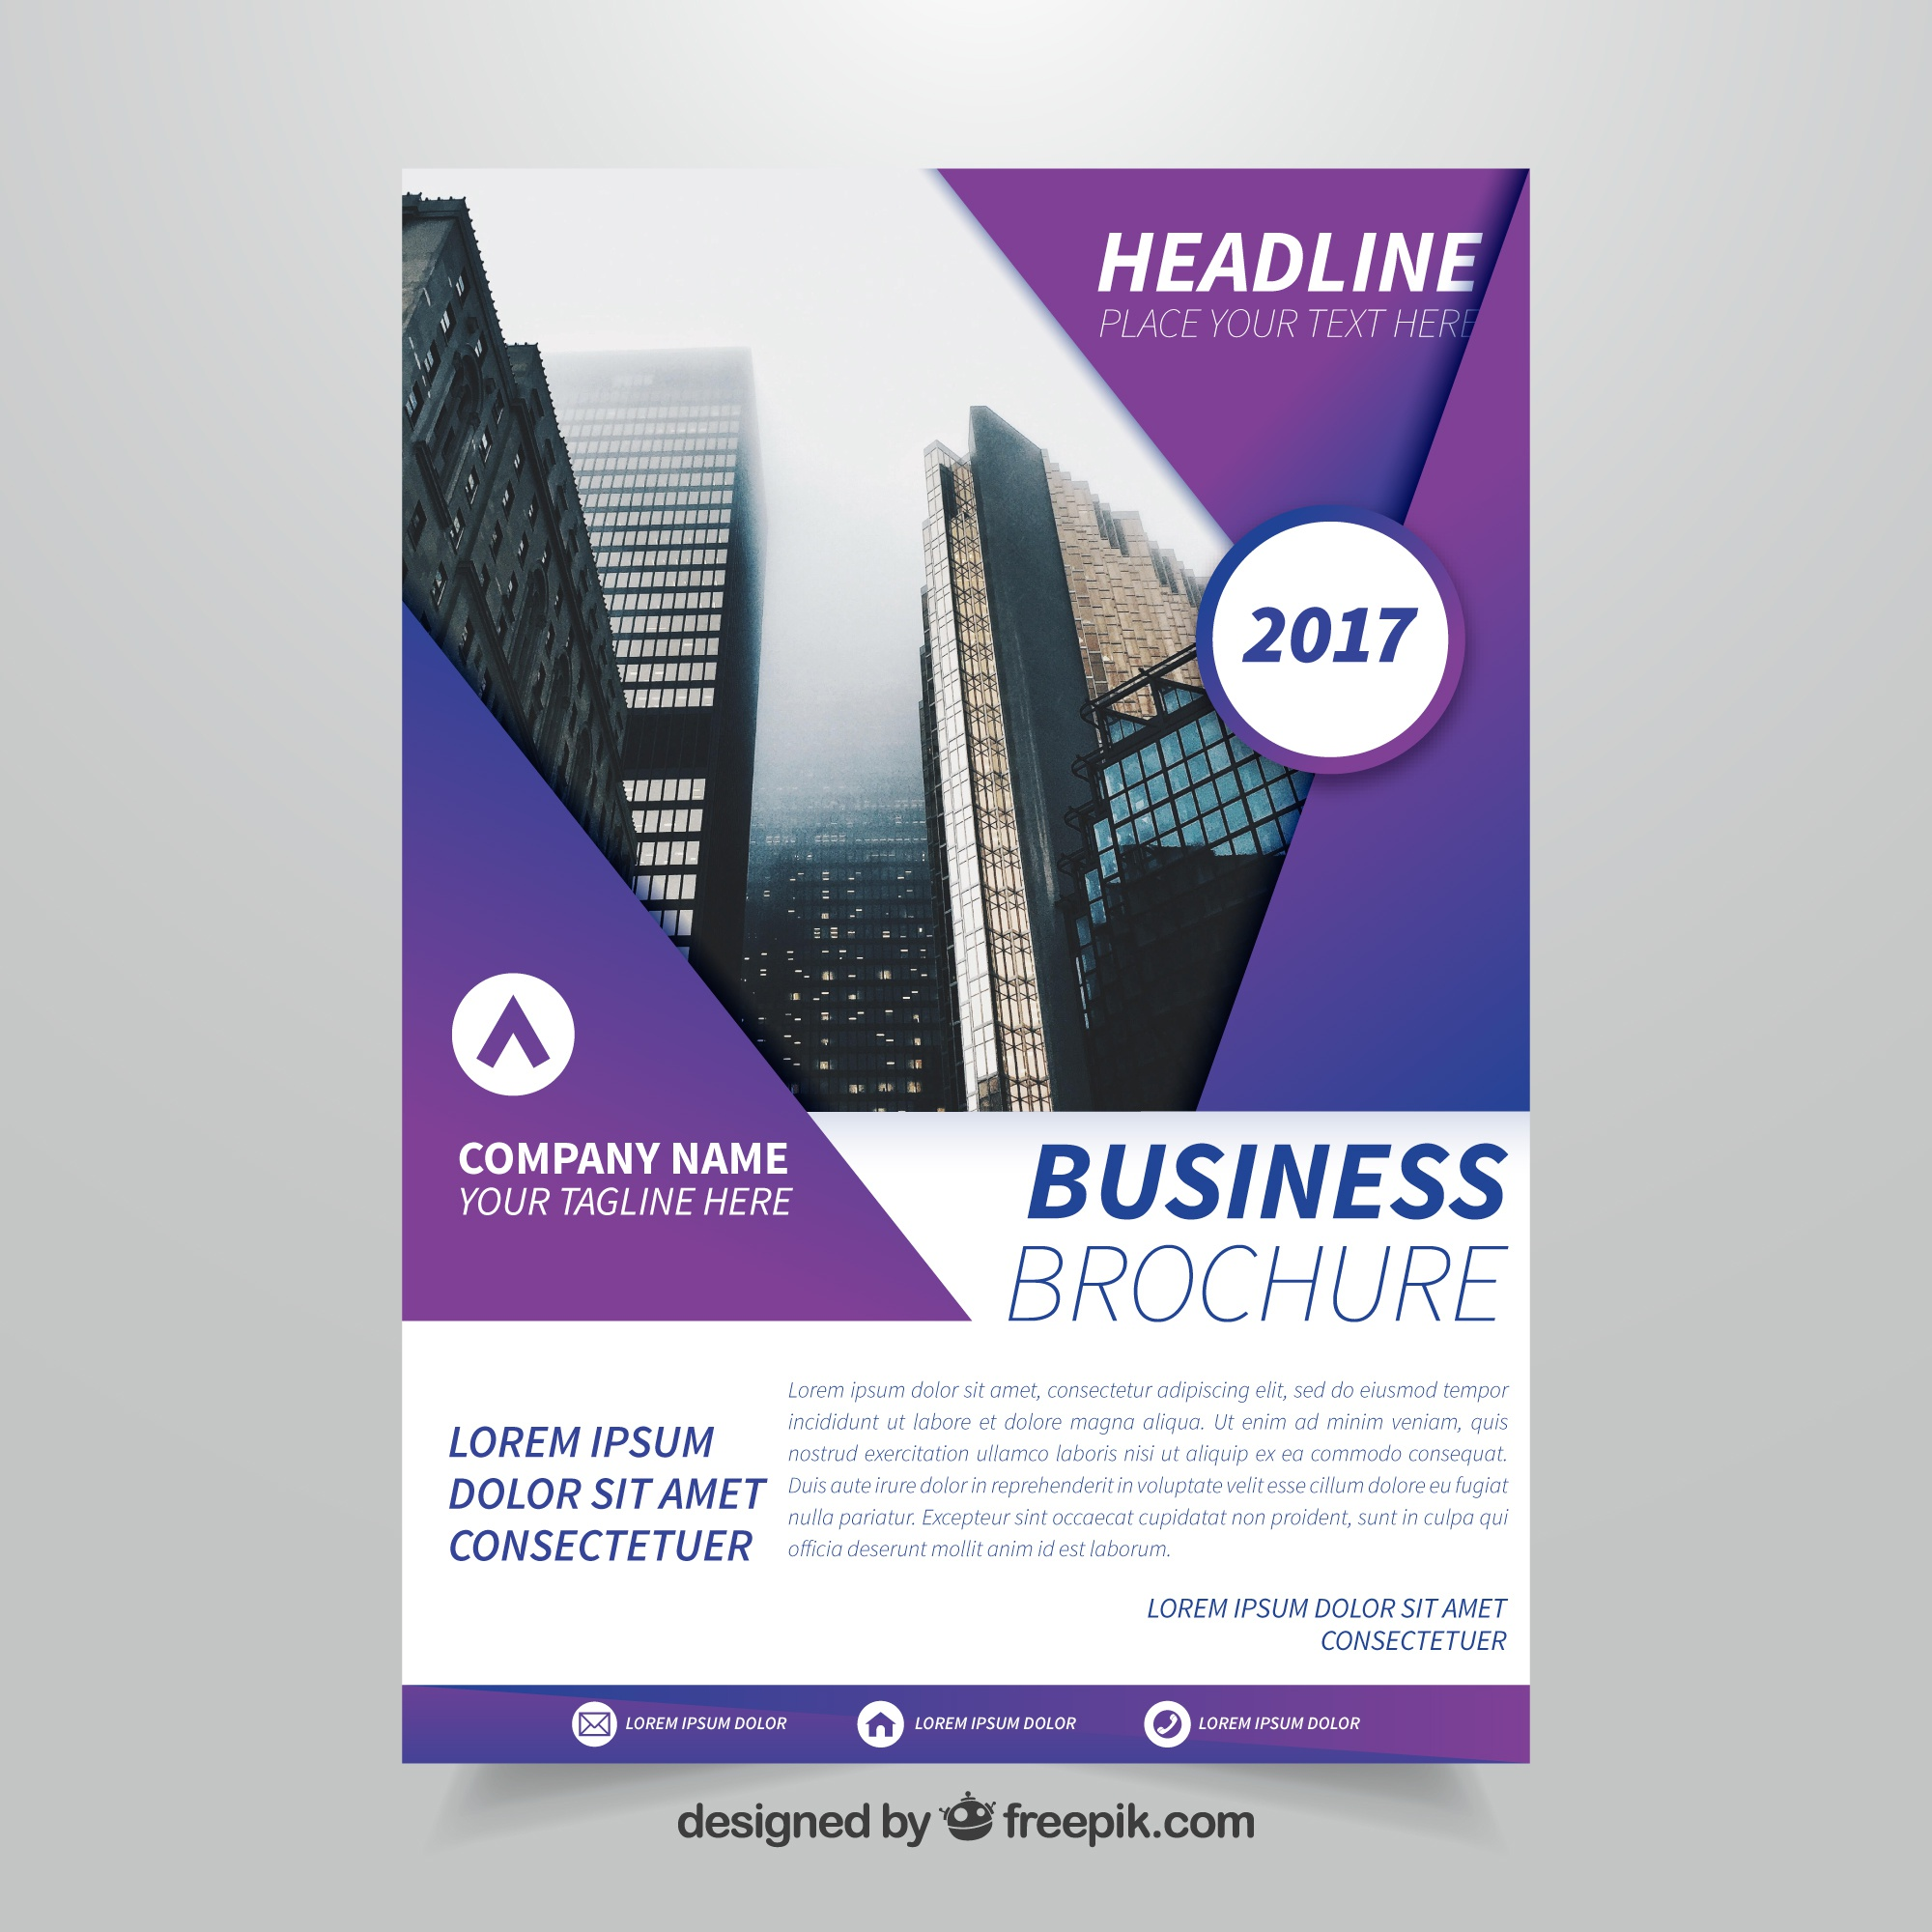 White and purple business brochure